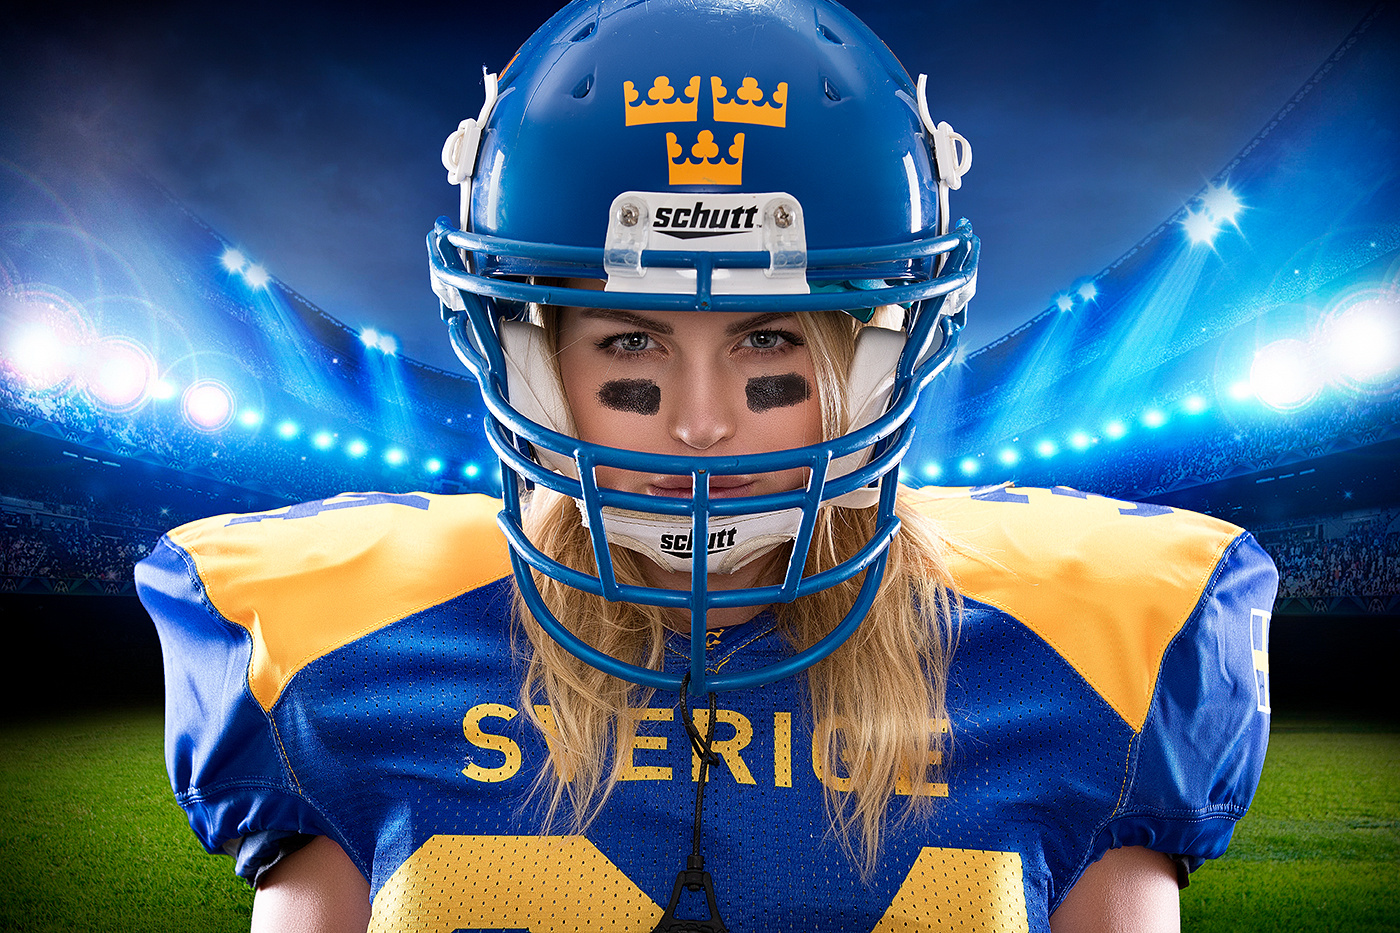 American football girl by Markus Pettersson